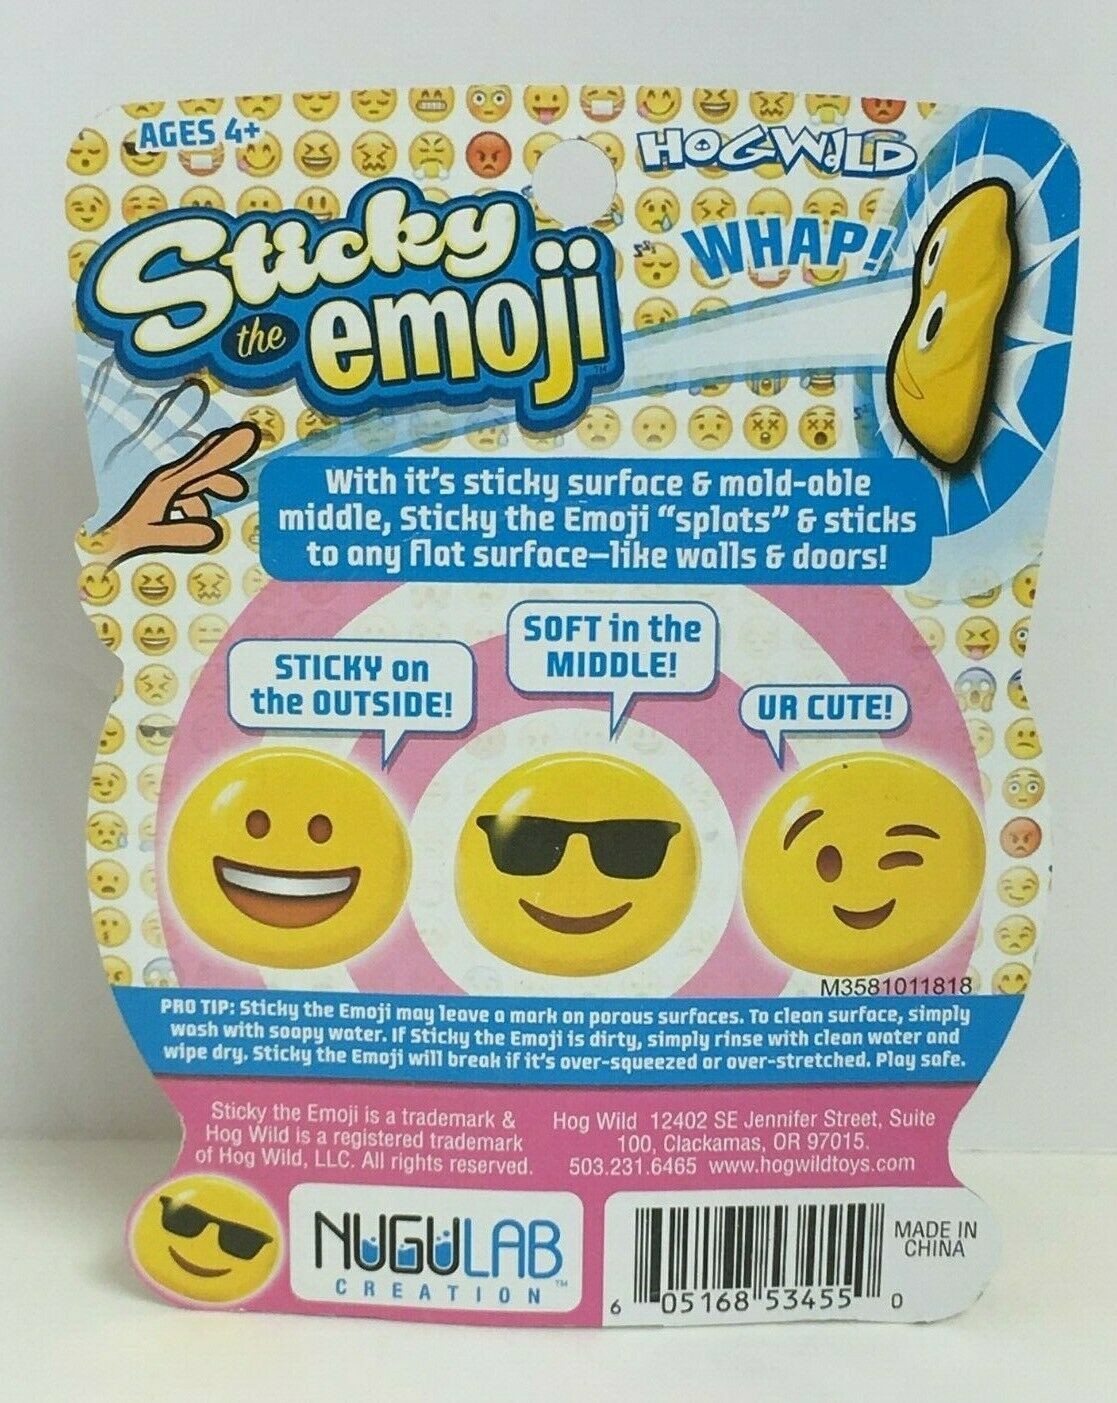 HogWild Yellow Sticky The Emoji Laughing Emoji Stikball W/ Mold-Able Middle